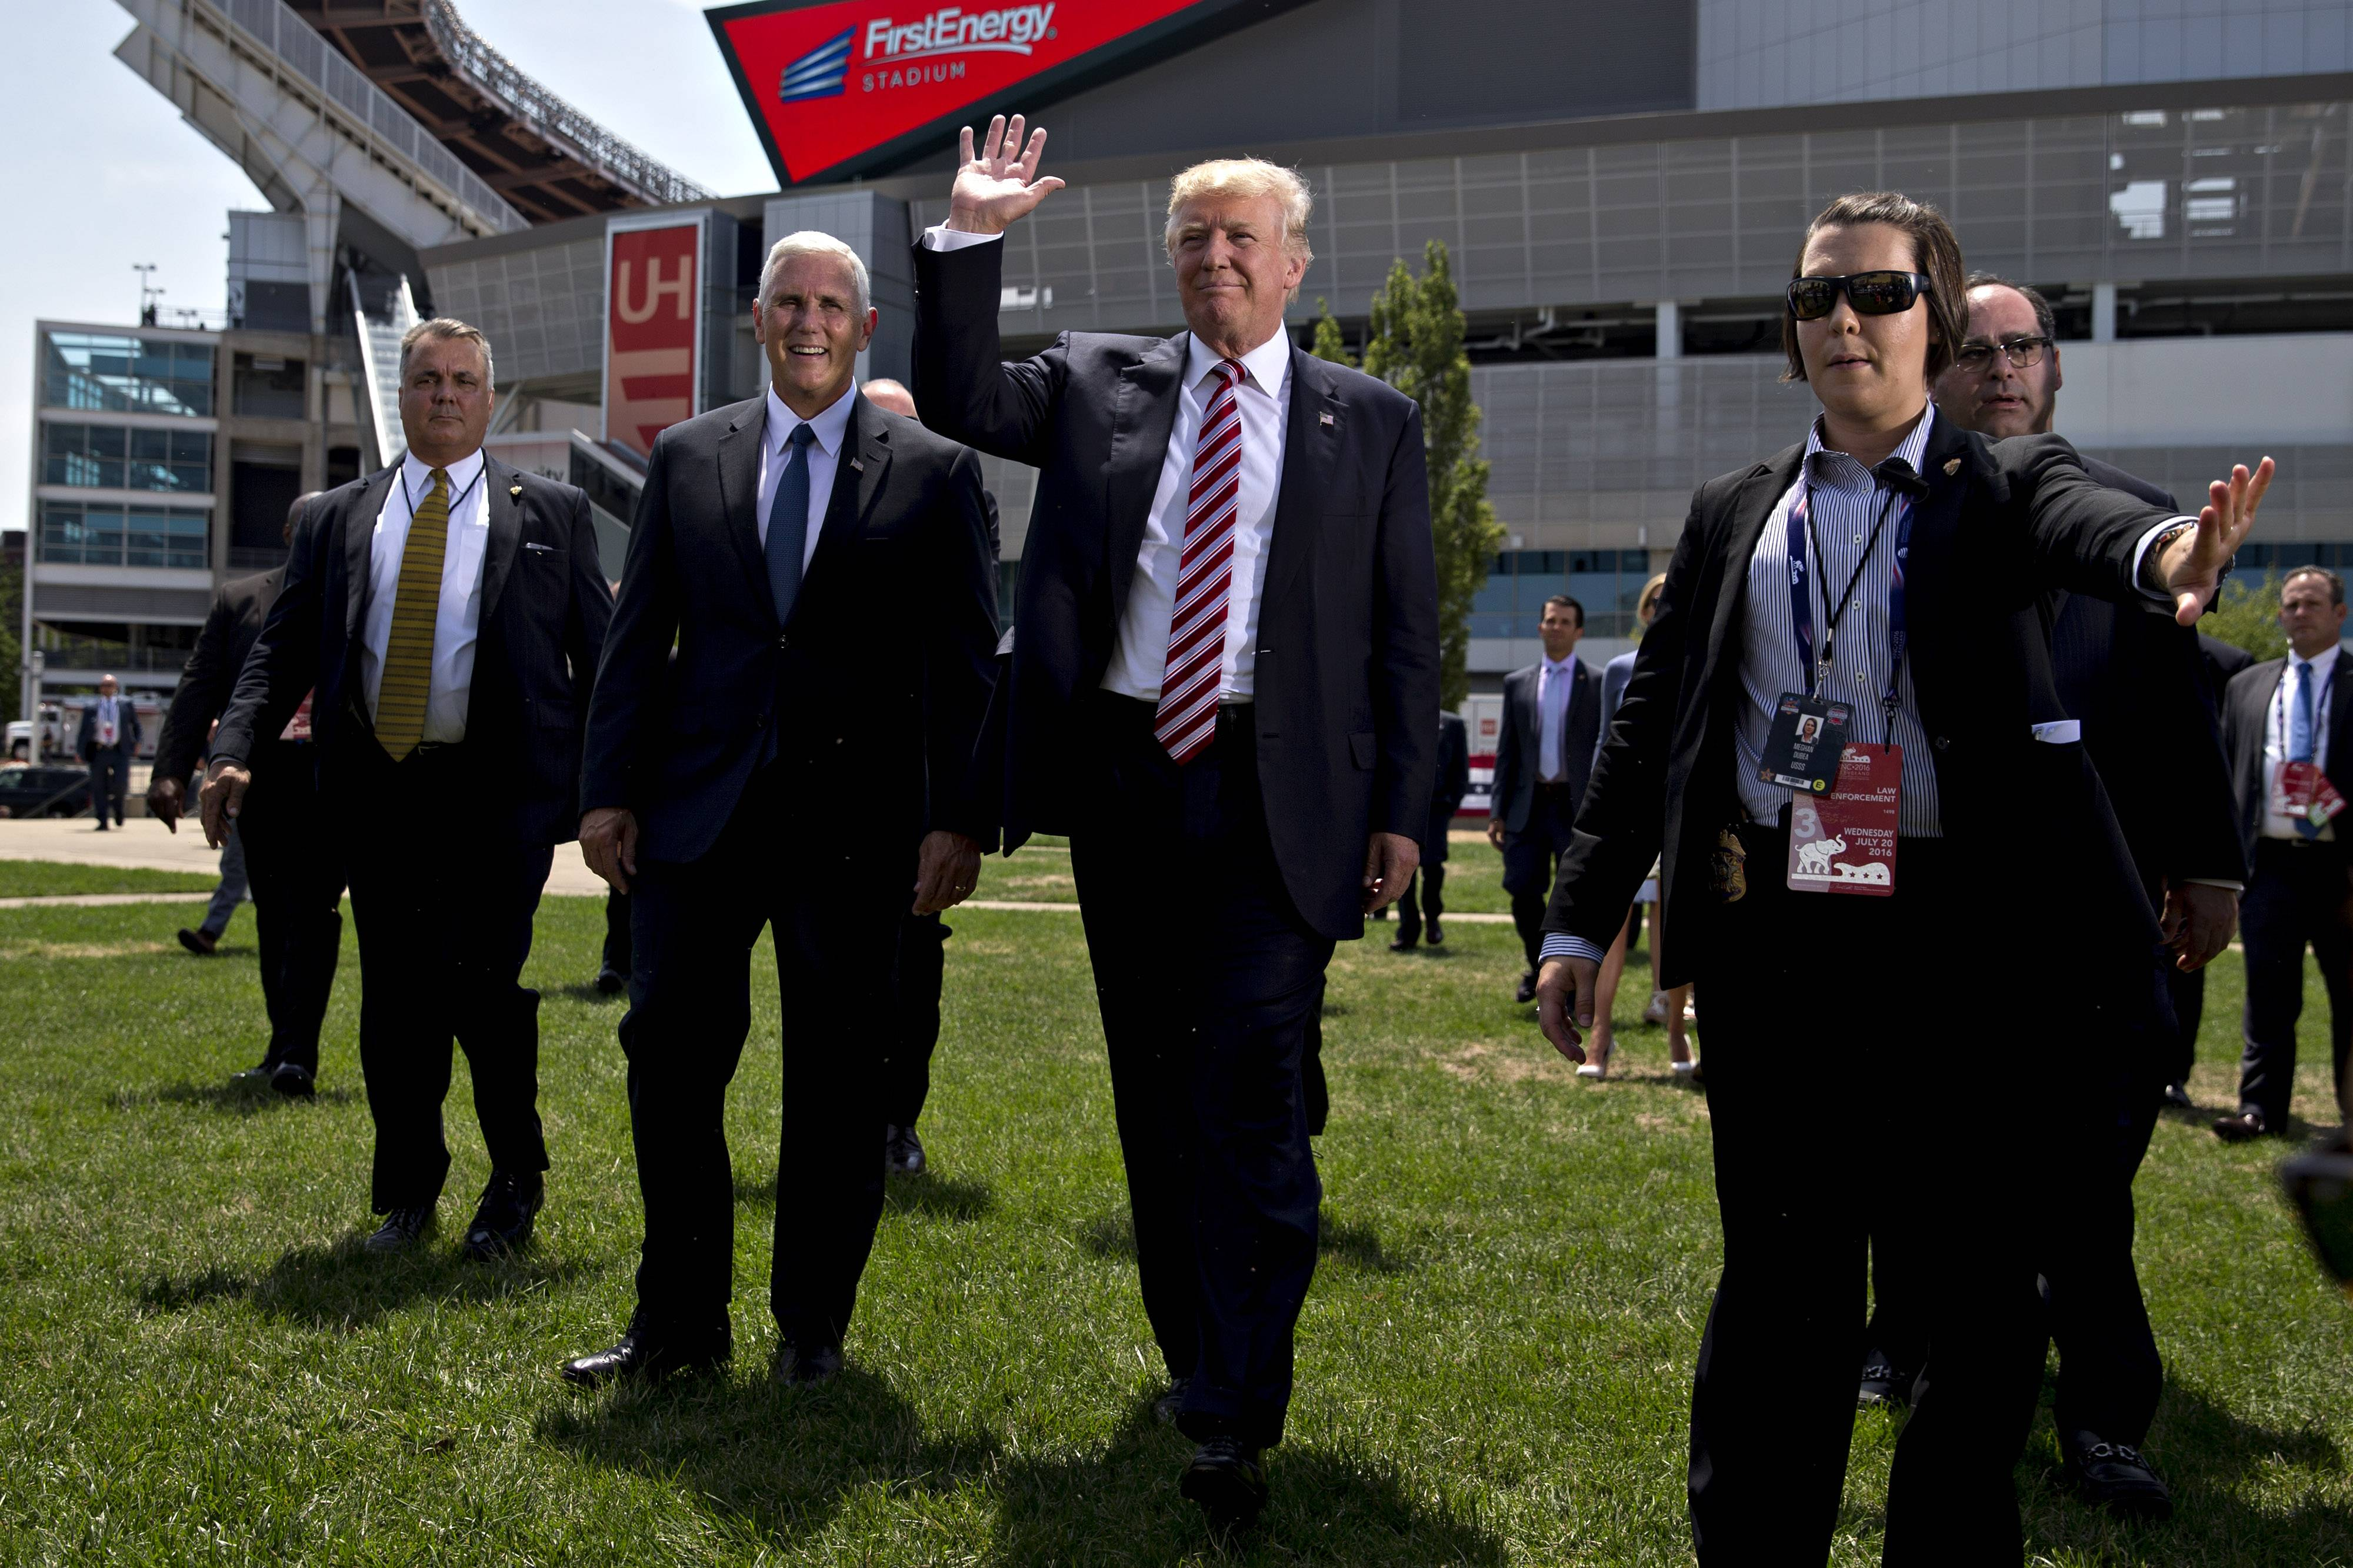 Donald Trump, 2016 Republican presidential nominee, center, waves while arriving with Mike Pence, 2016 Republican vice presidential nominee, second left, during a friends and family event on the sidelines of the Republican National Convention (RNC) in Cleveland, Ohio, U.S., on Wednesday, July 20, 2016. Trump, a real estate developer, TV personality, and political novice, was formally nominated as the 2016 Republican presidential candidate Tuesday night in Cleveland after his campaign and party officials quashed the remnants of a movement to block his ascension.